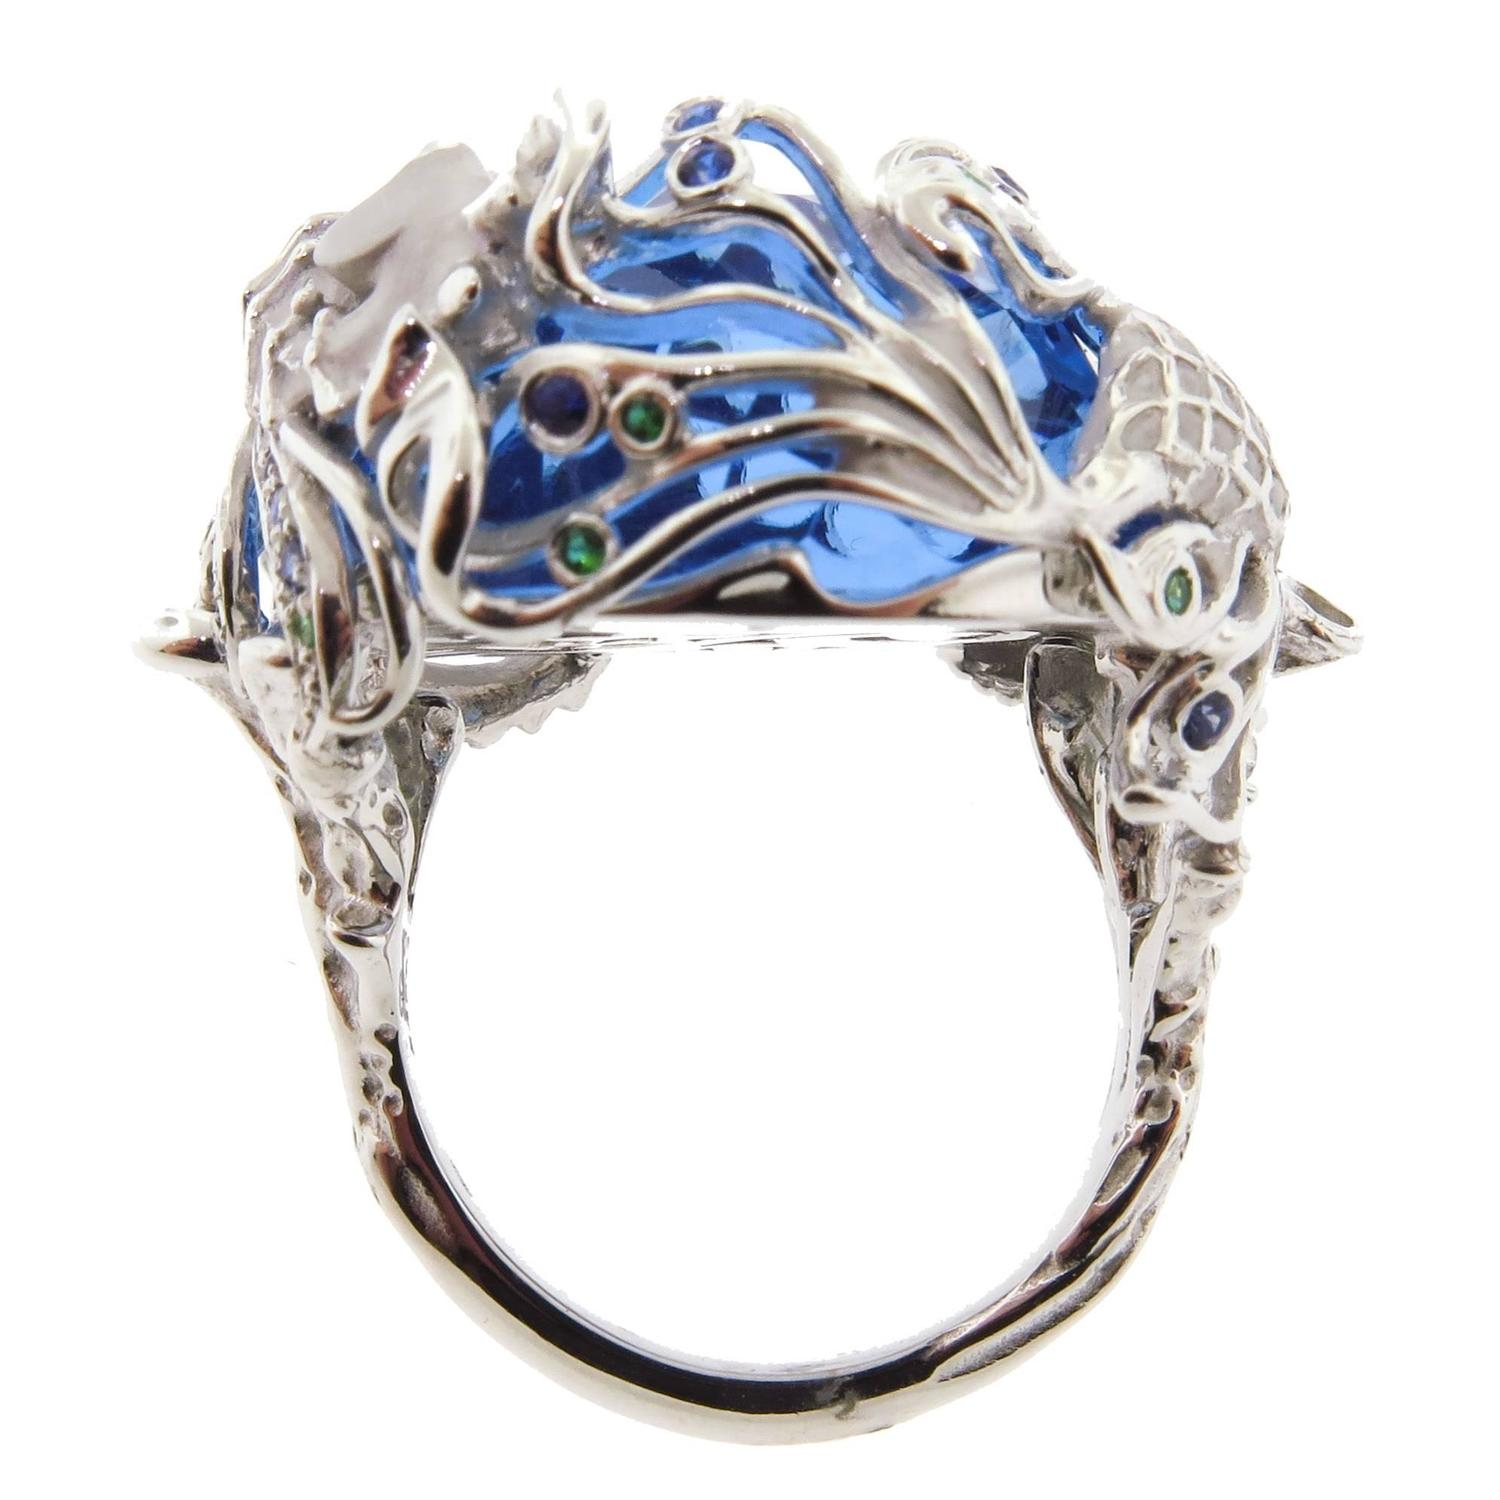 Marine Life Cocktail Ring By Carrera Y Carrera For Sale At